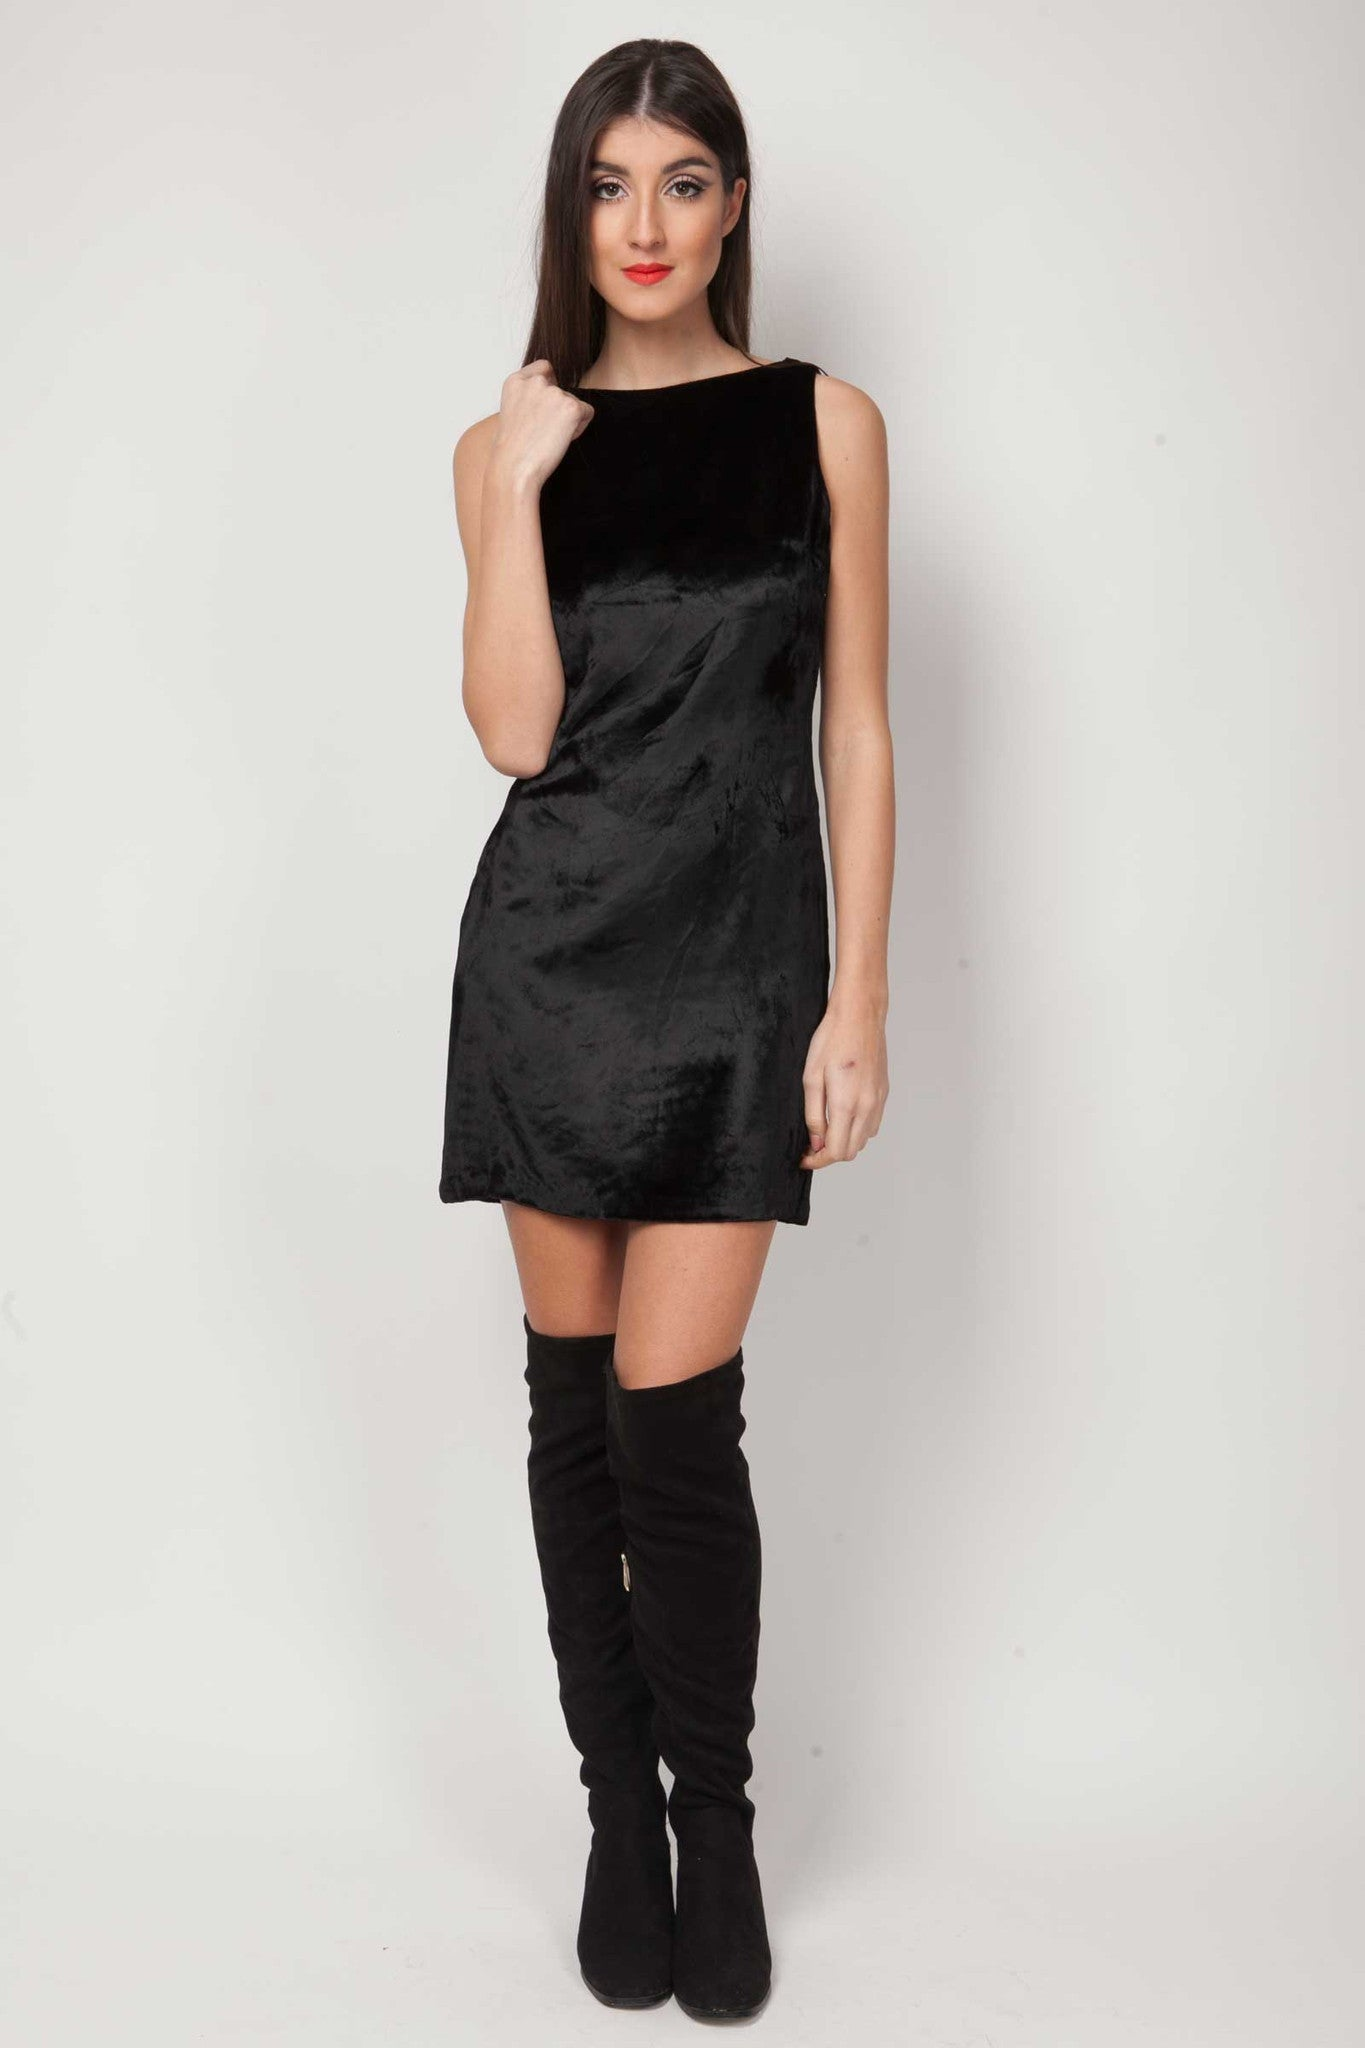 Rimona velvet dress